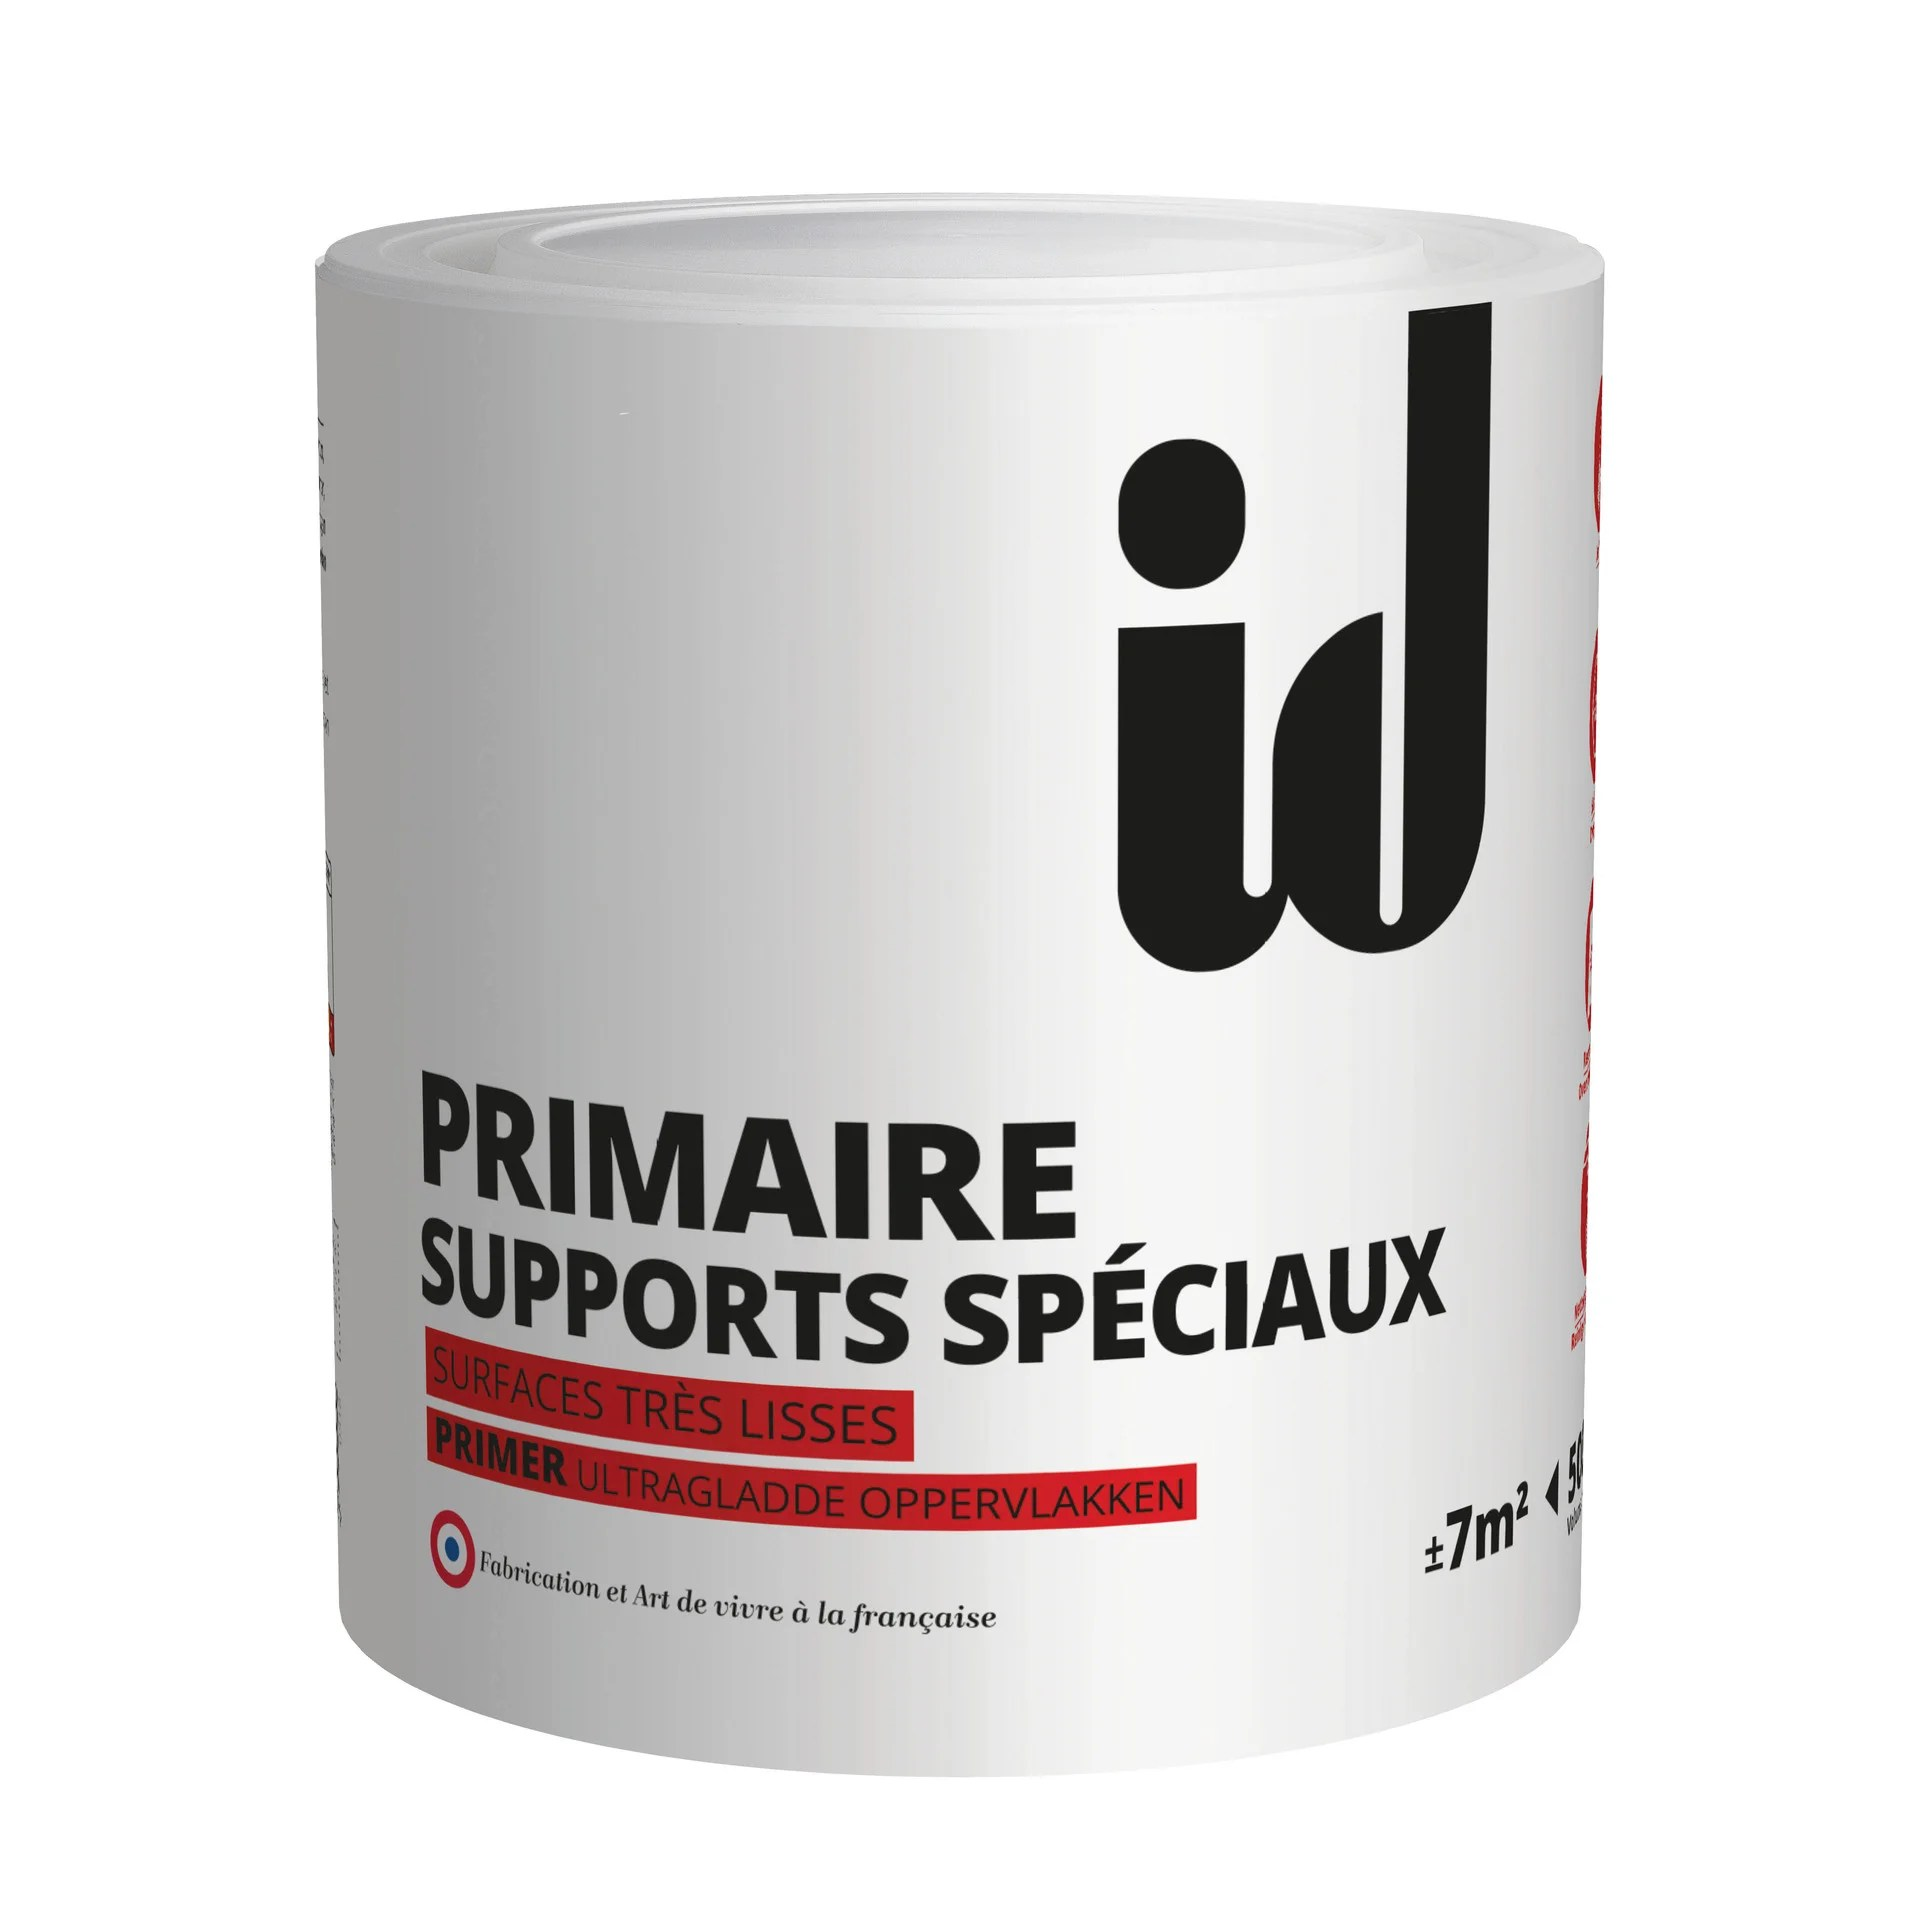 primaire supports speciaux id blanc